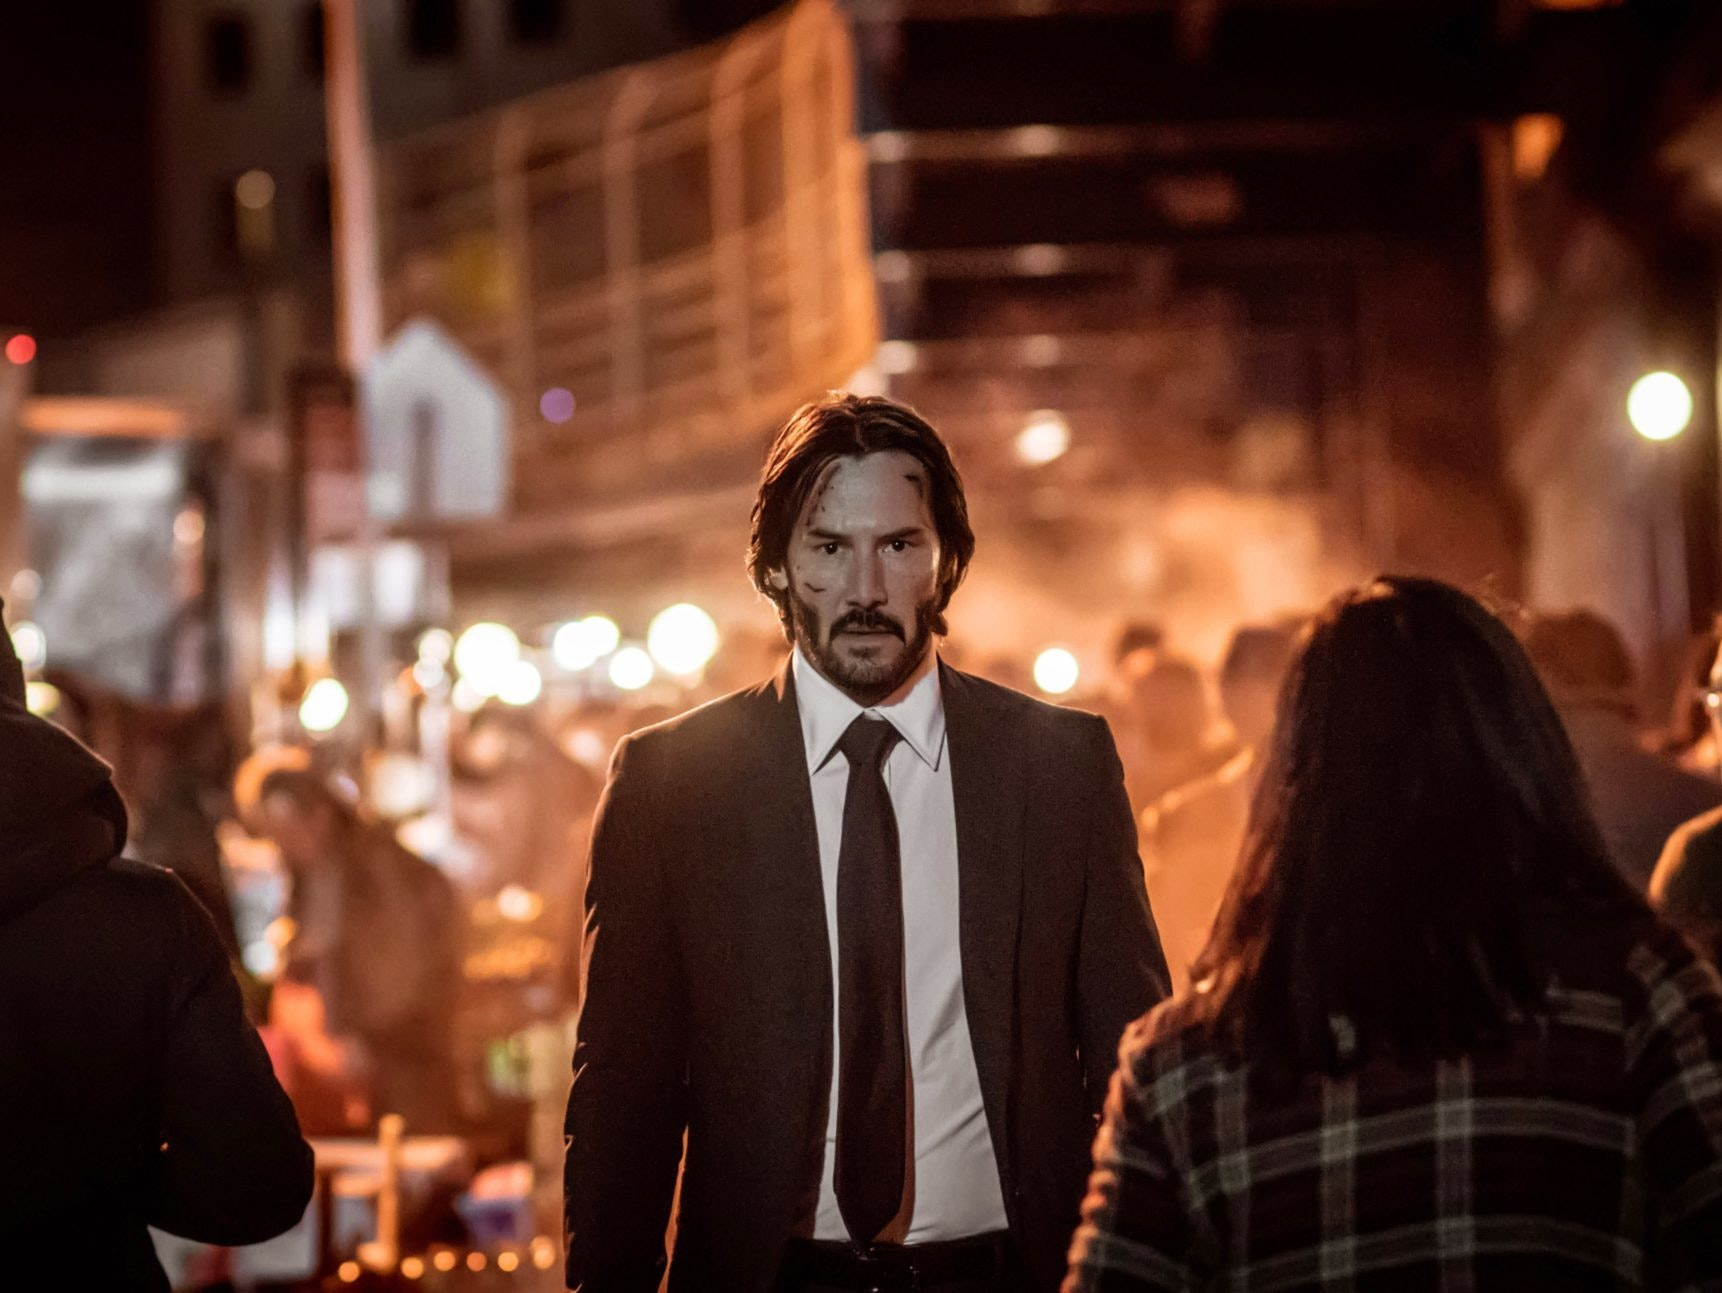 What Will Happen In John Wick 2 Based These New Photos